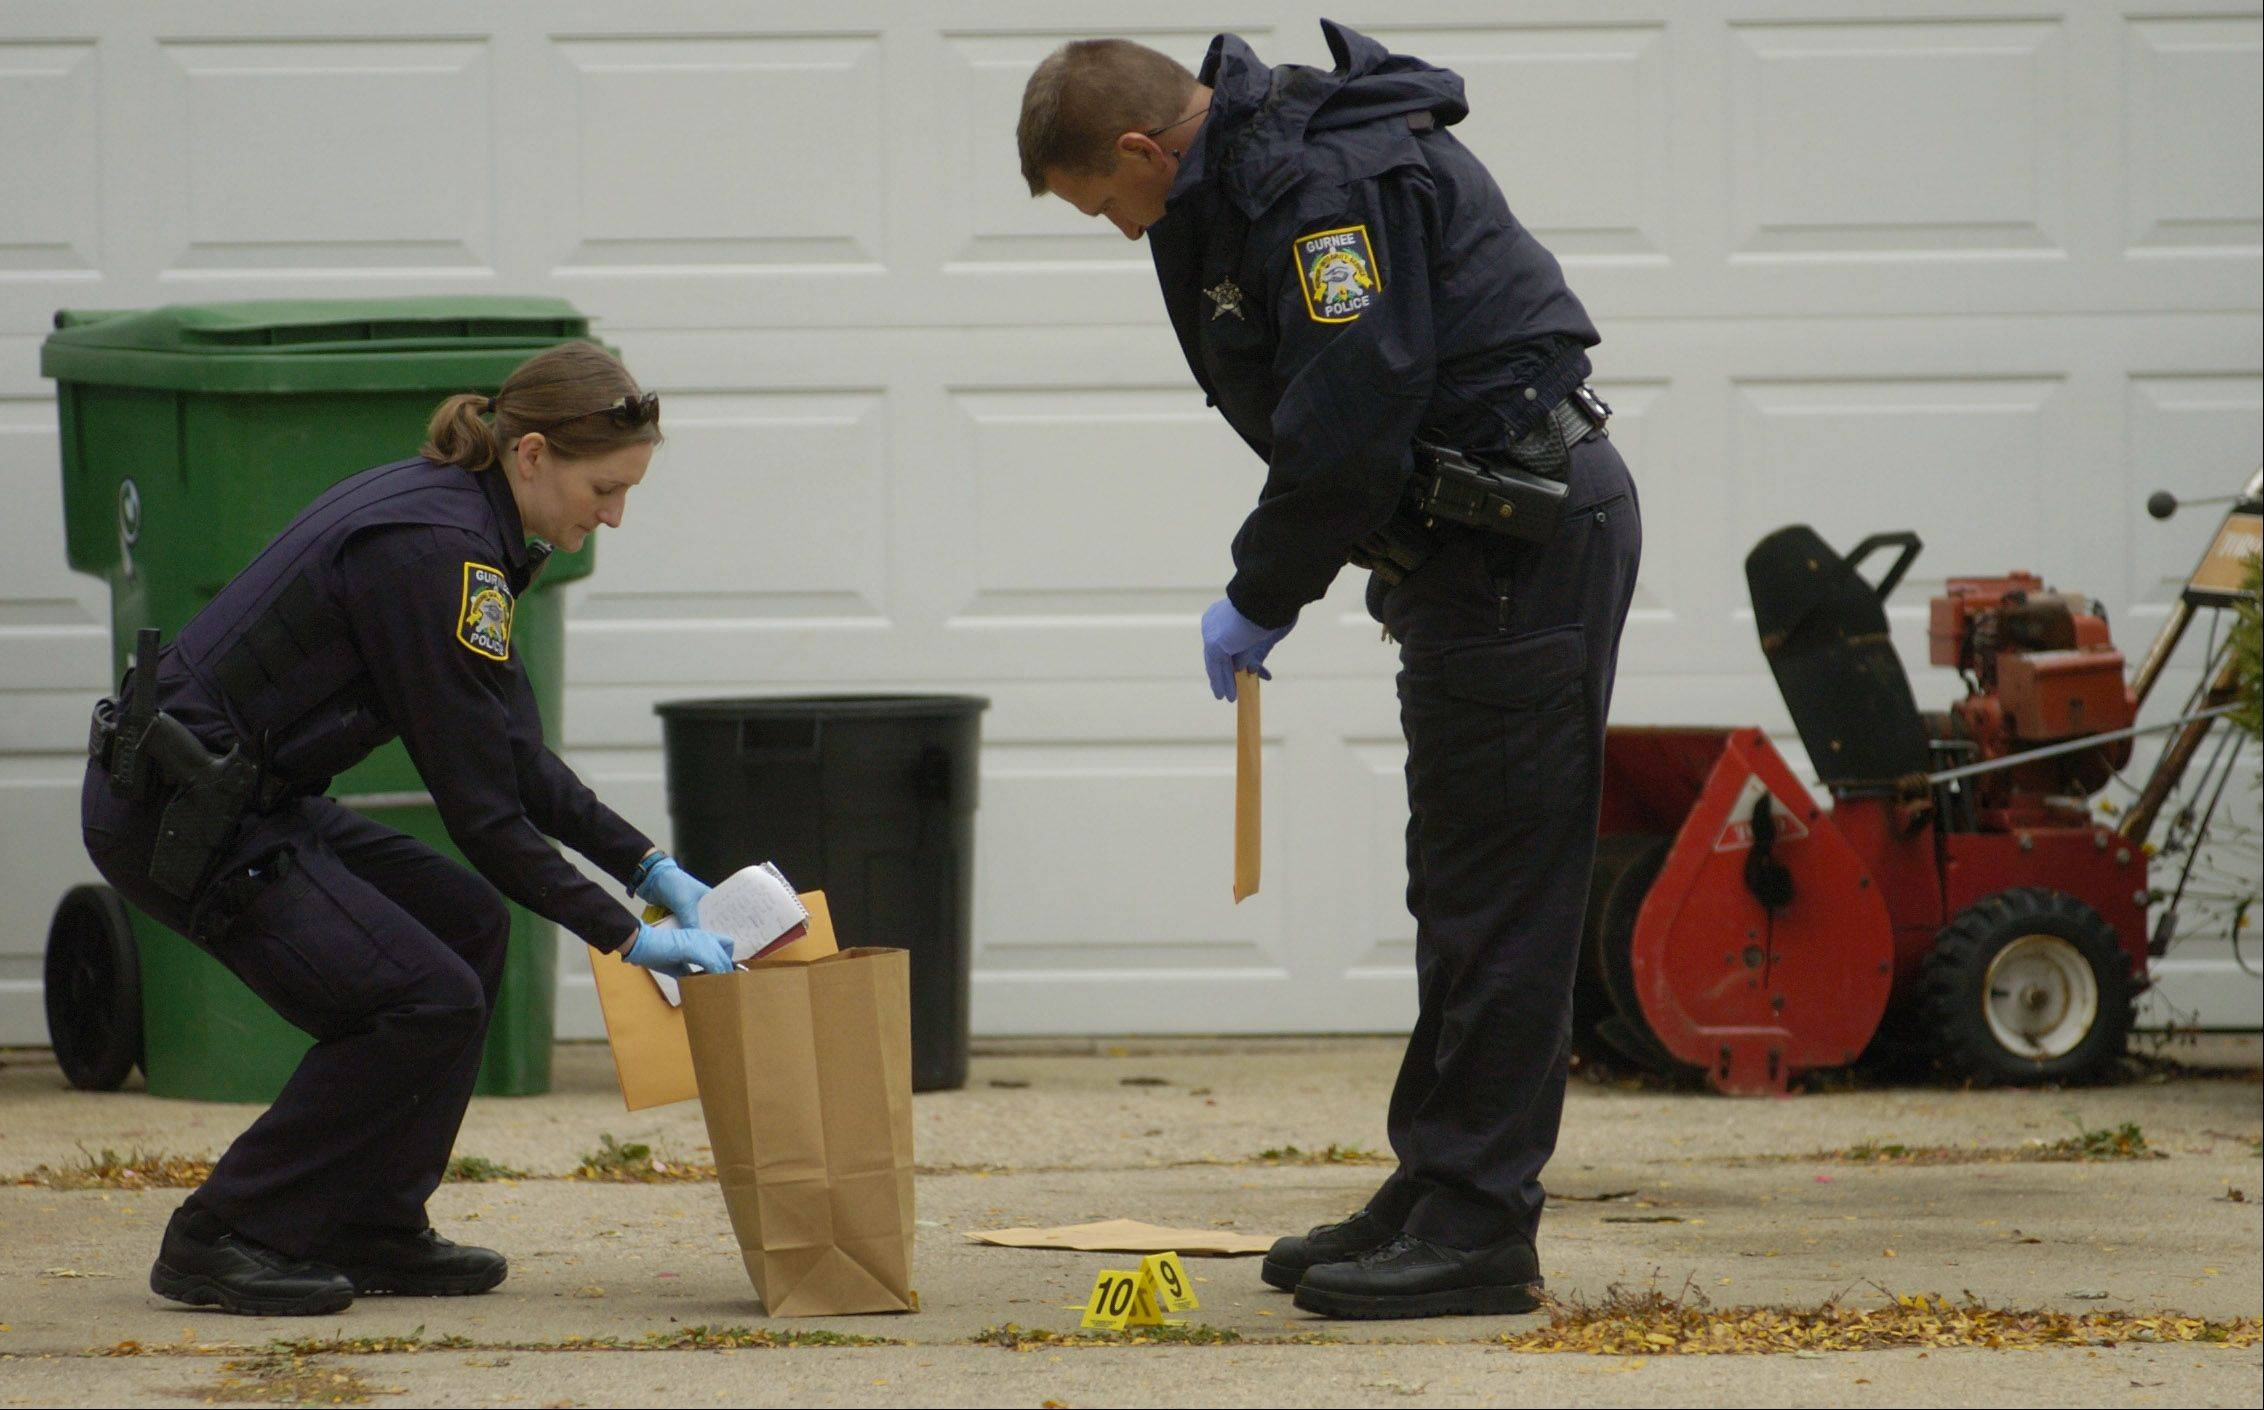 Police gather evidence in front of a home on Raven Court in Gurnee, where authorities say a Zion man fired shots at four people before keeping police at bay for several hours Friday.